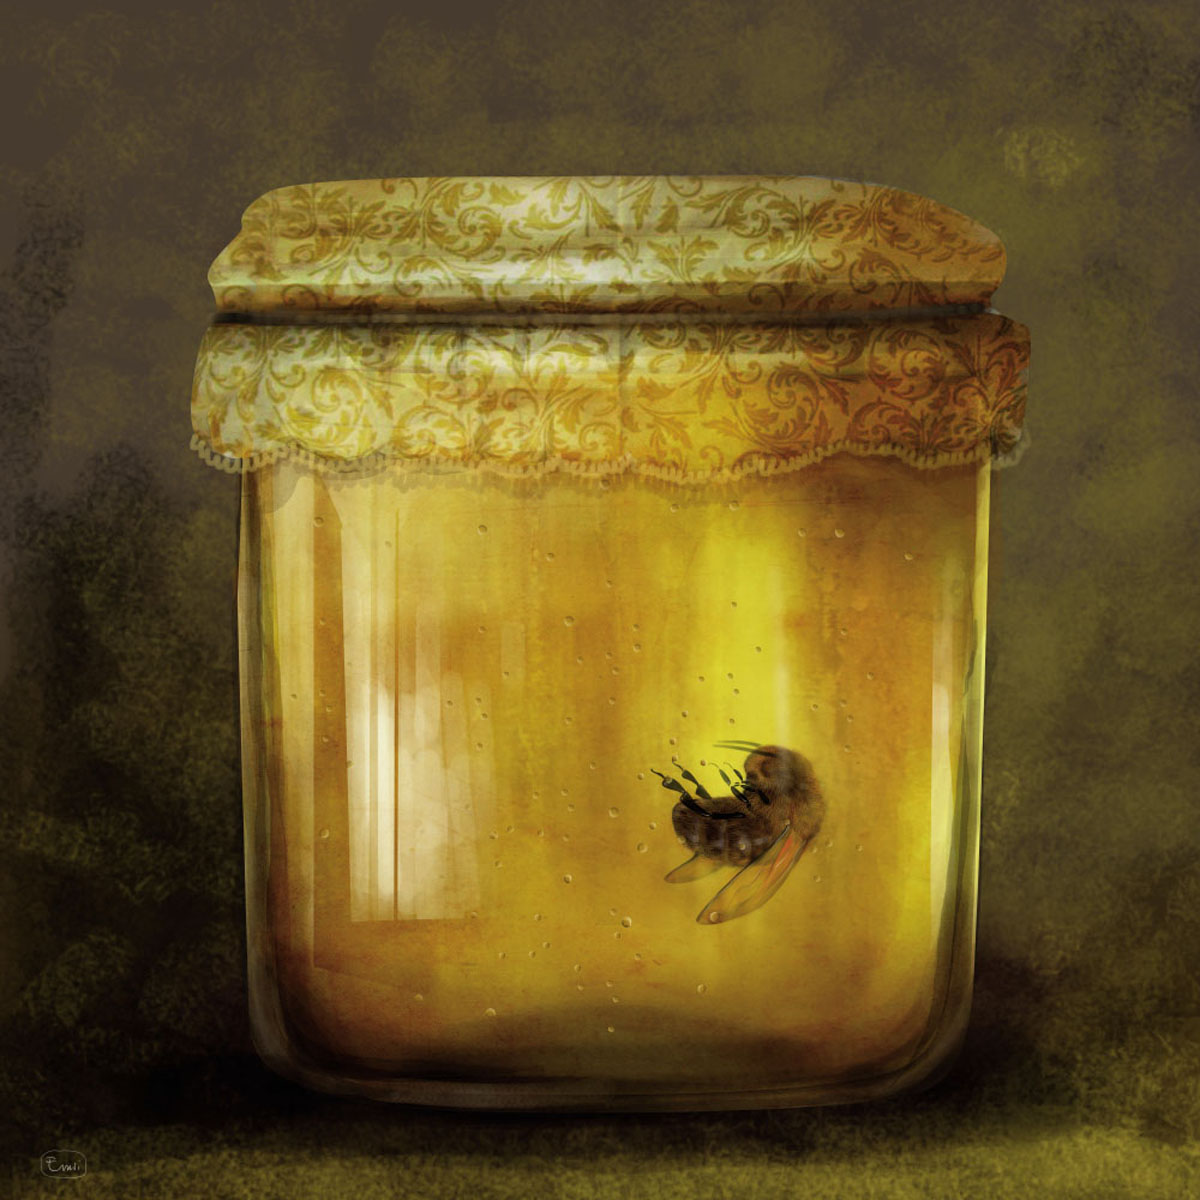 Emilia Dziubak, Honey